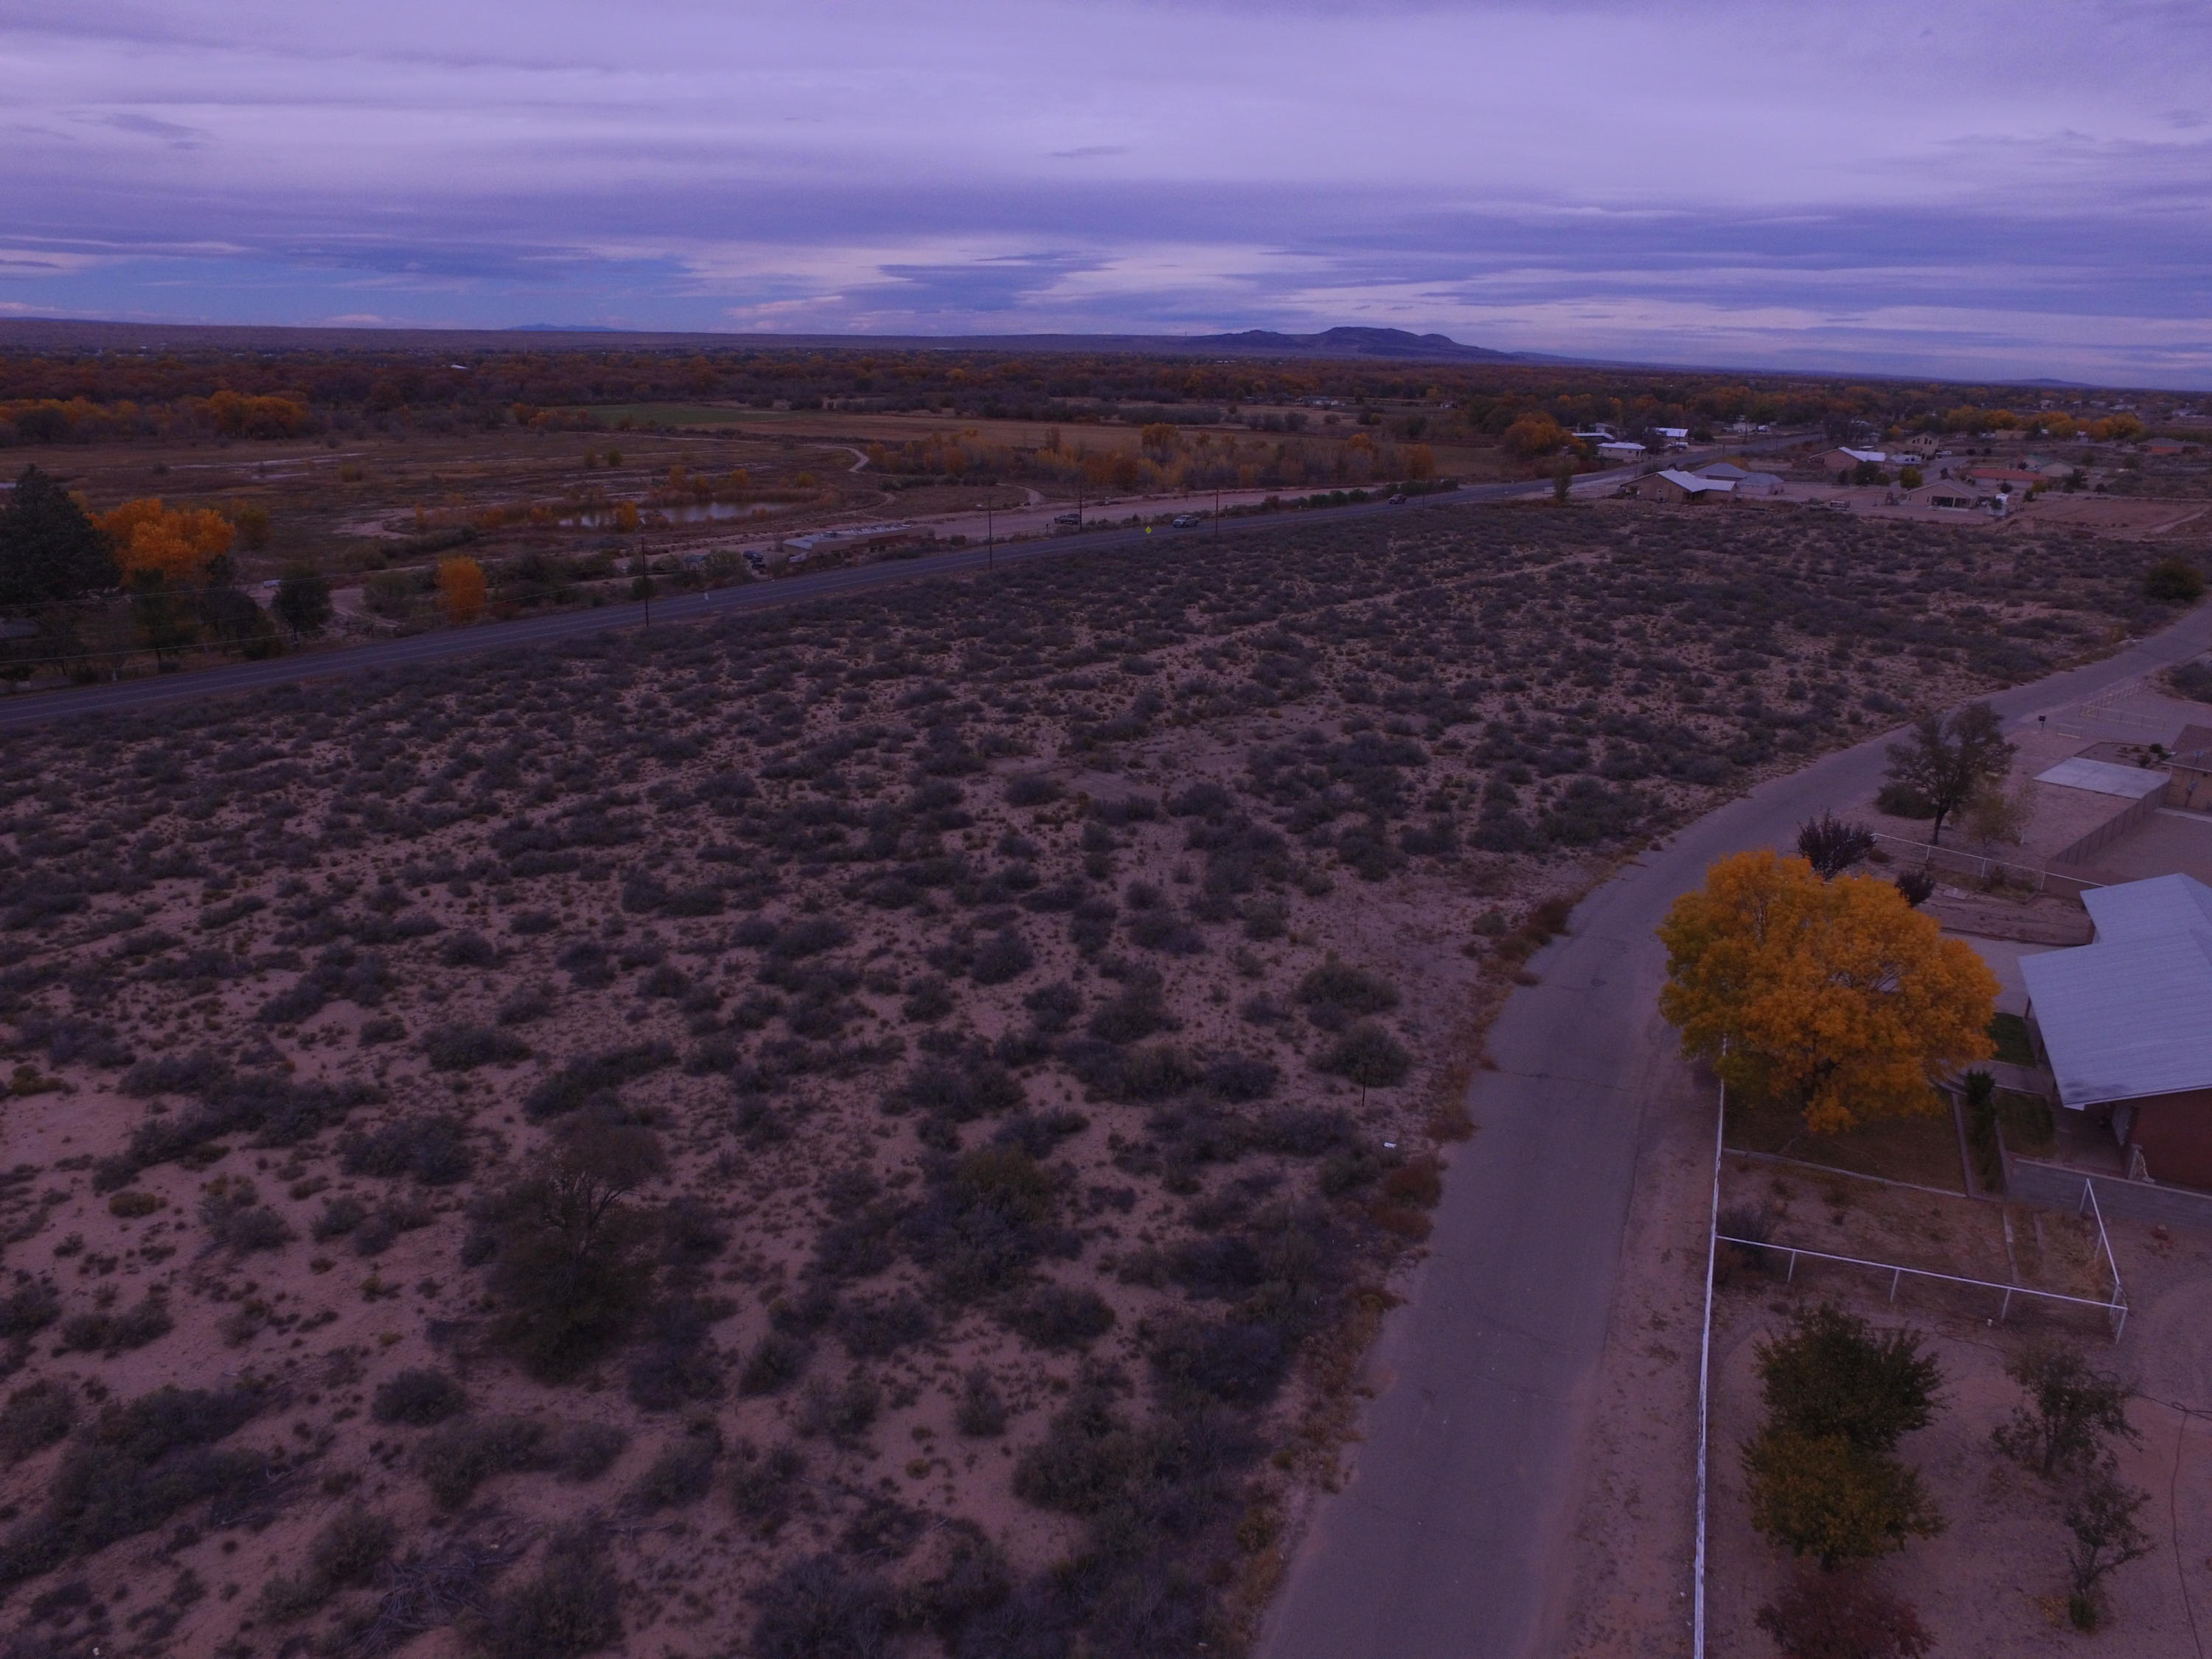 0 Hwy 47 & Sherrod, Belen NM 87002 - Photo 2